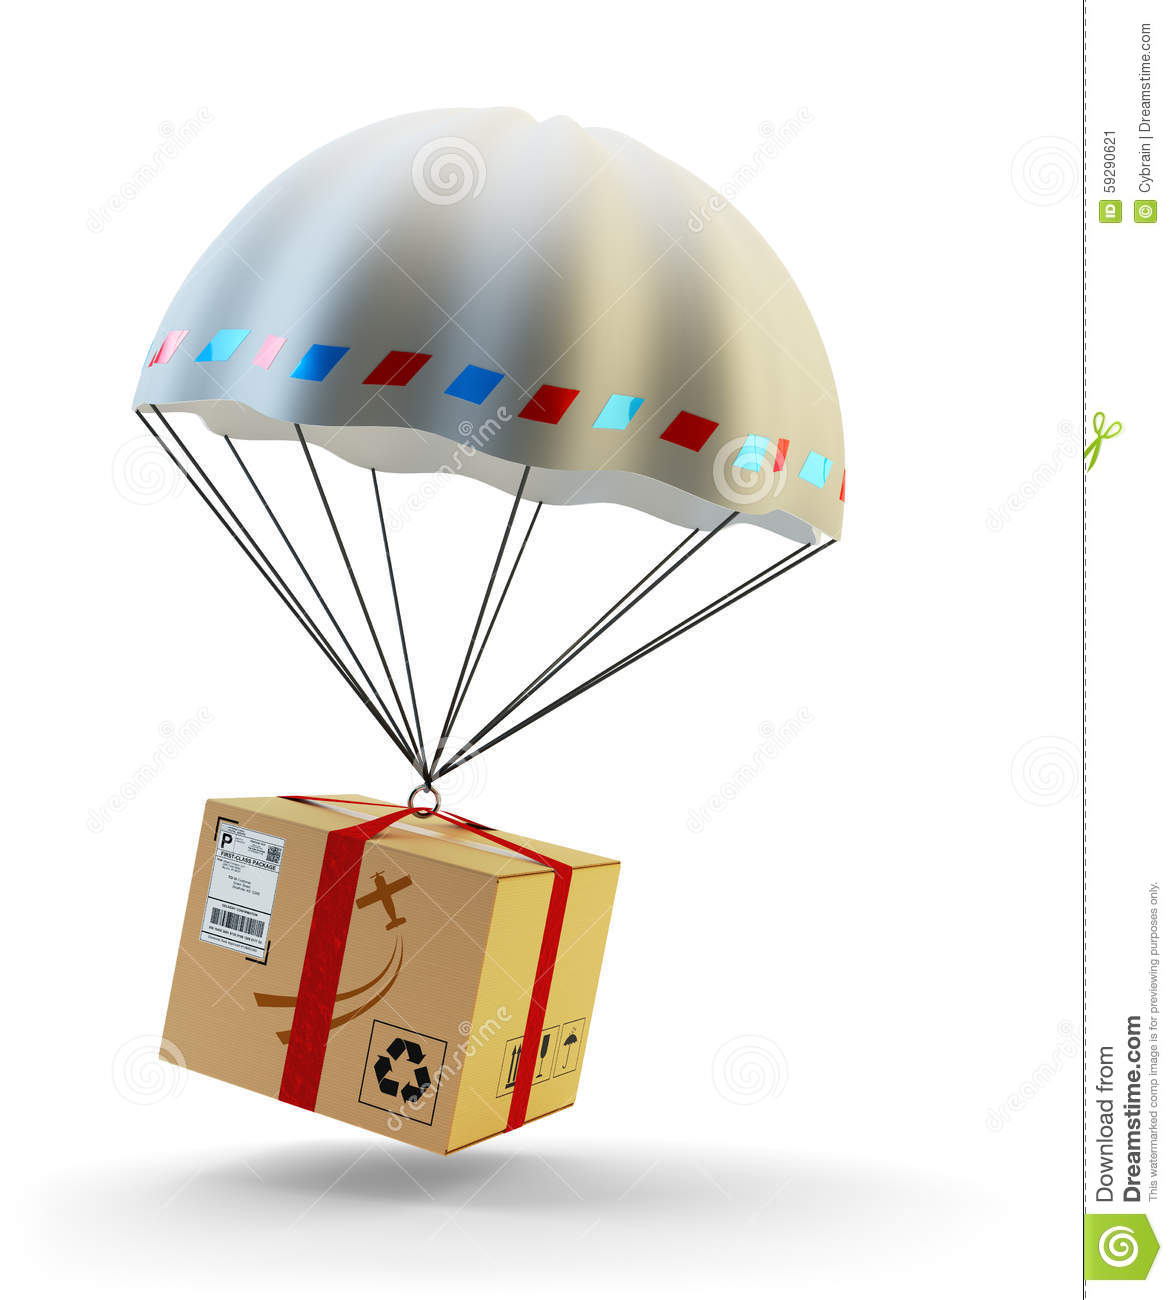 drone courier with Stock Illustration Package Delivery Air Concept Purchases Transportation Service Cardboard Box Parachute White Background Image59290621 on 122832428771 in addition 1 5 Litrelik Yeni Dizel Motoru Gelistirmeleriyle 2018 Ford Transit Connecte Ilk Bakis in addition 1087053 Draw The Squad moreover 79590082 together with Gps Tracker  102 Car Tracker Vehicle Tracker Drone Van Truck Bus.